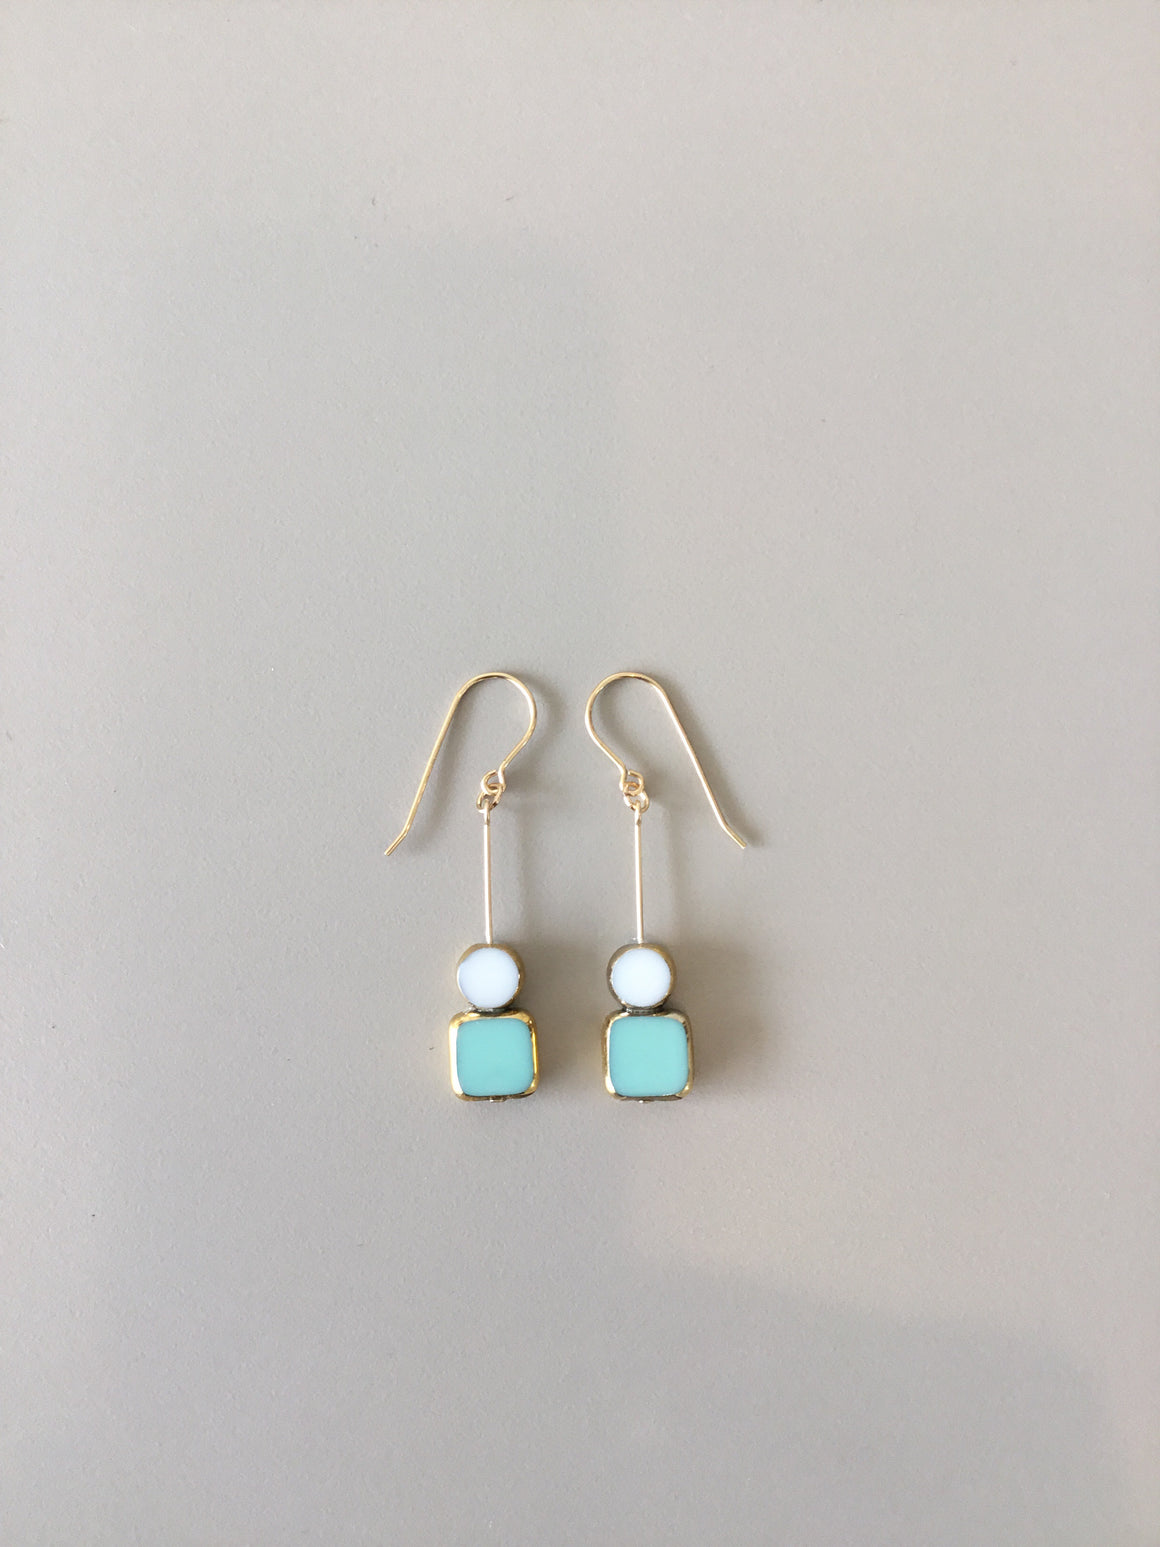 I. Ronni Kappos stacked aqua square earrings